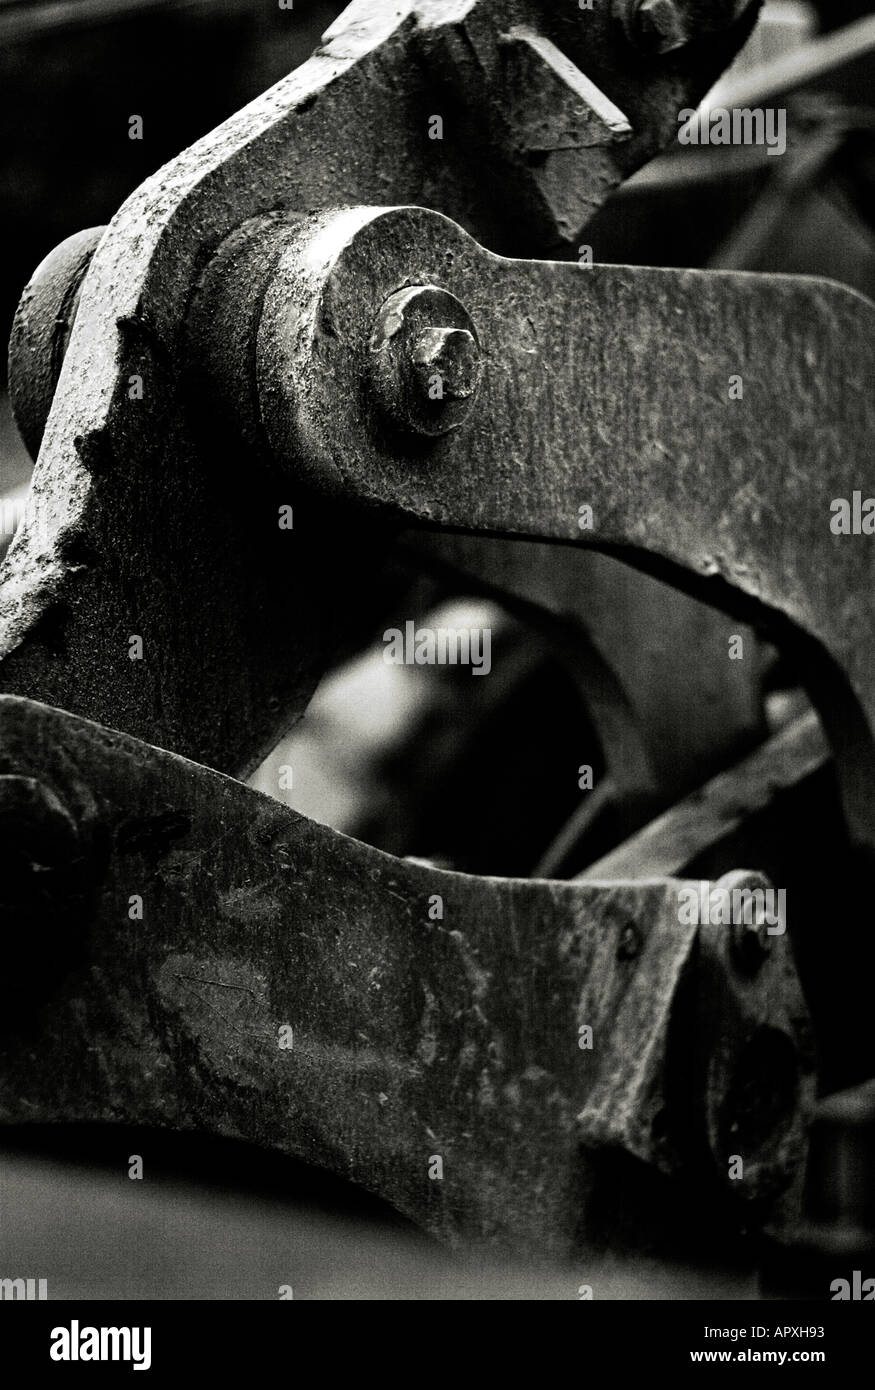 Detail of tractor metal hinges on shovel linkage Stock Photo